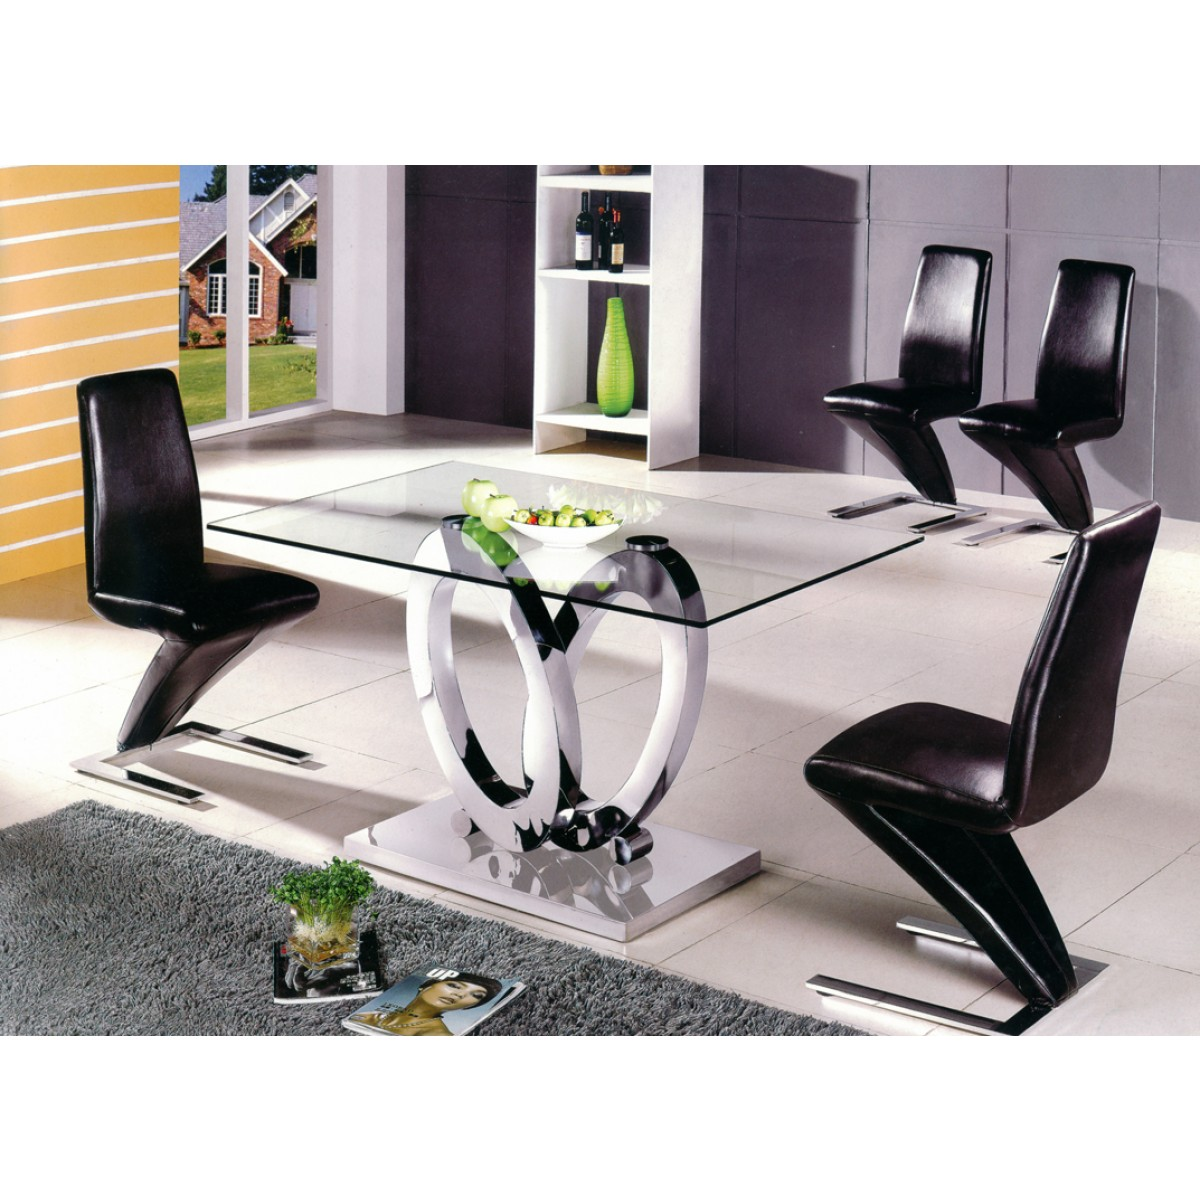 Table manger design ellipse taille au choix tables for Salle a manger design but